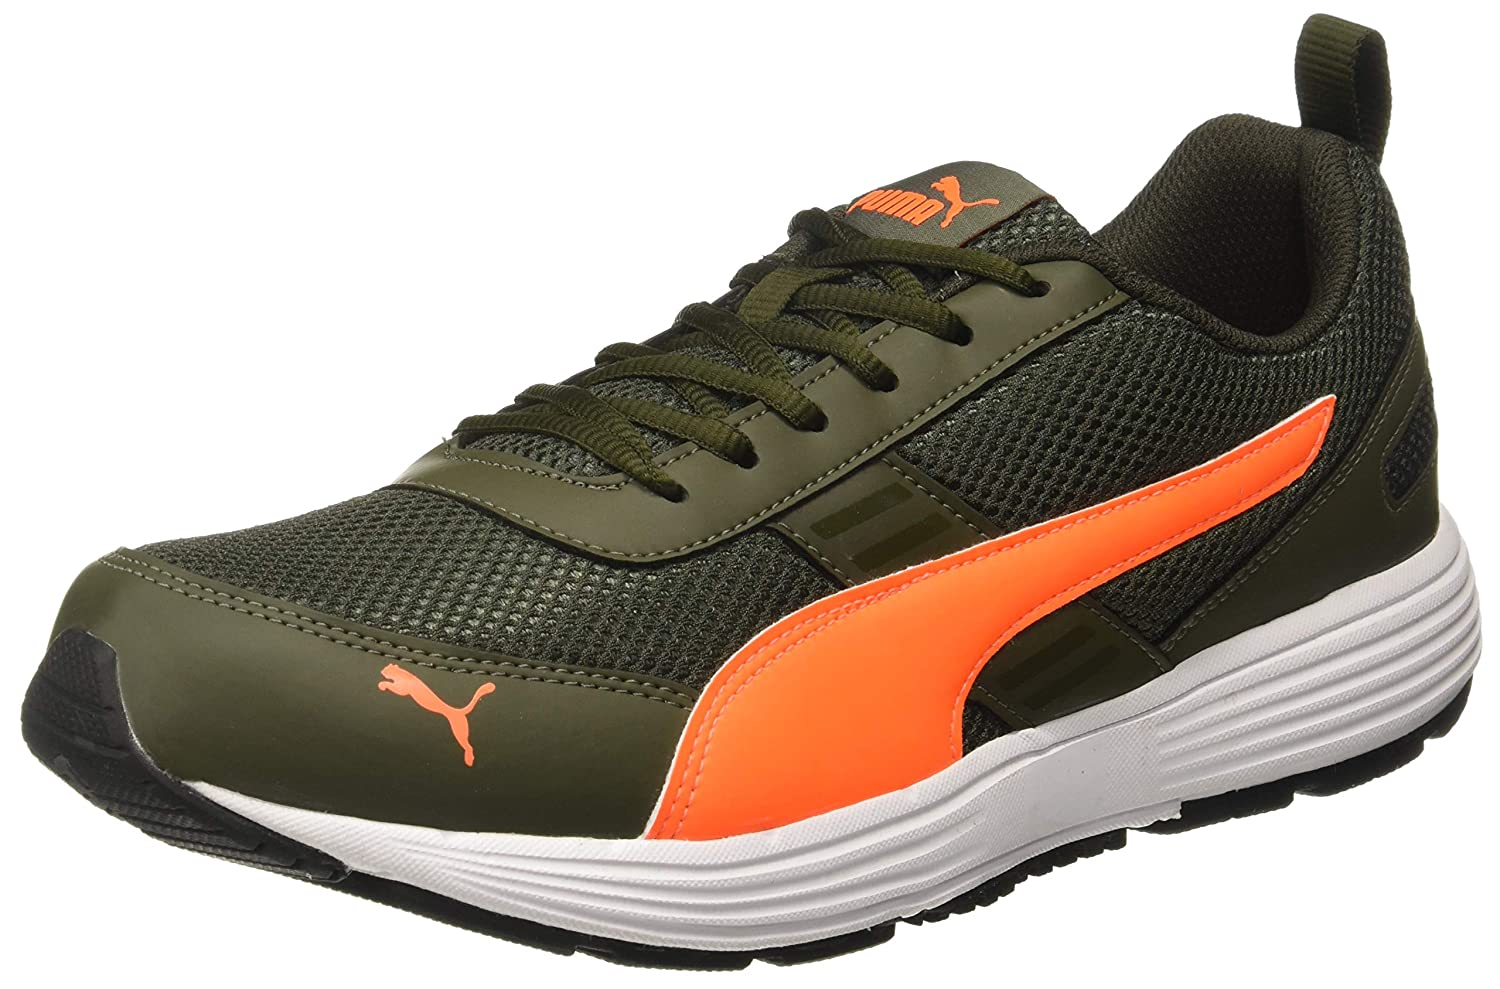 b9495cce16f1 Puma Men s Shoes  Buy Online at Low Prices in India - Amazon.in